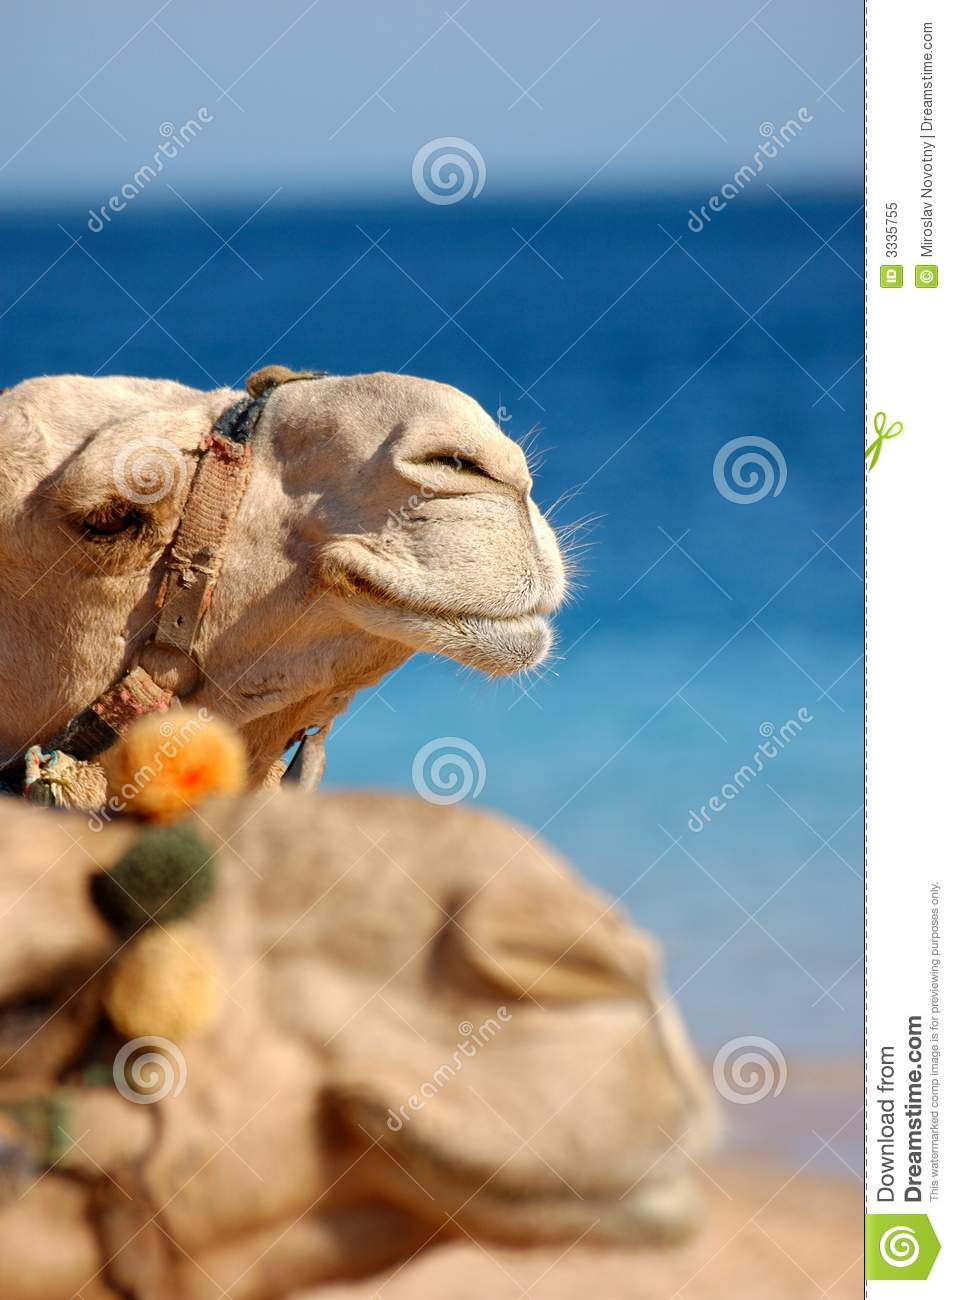 Two camels face